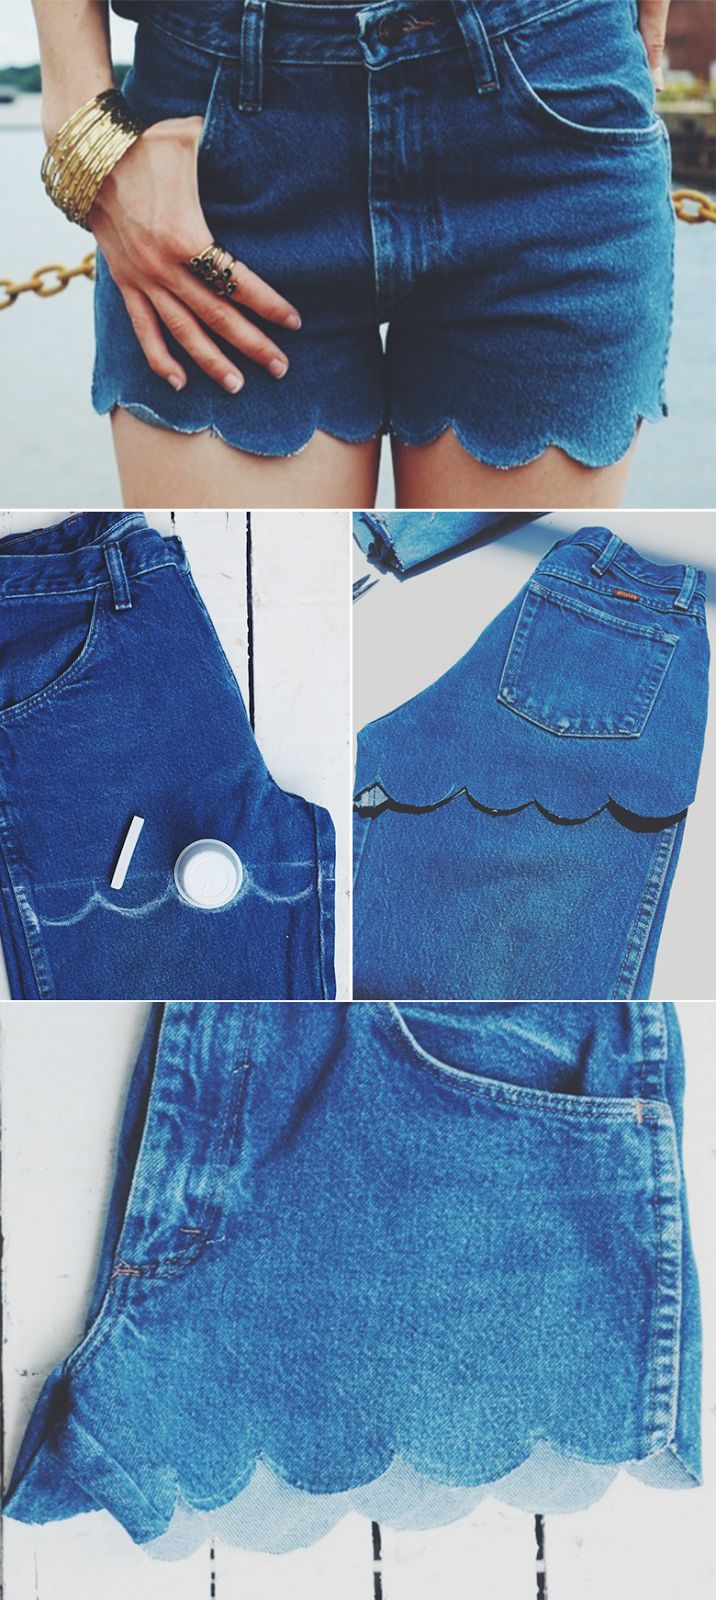 Opinando Moda: 3 maneiras de transformar calça jeans em Short (Jeans cut into Scallop-edged denim shorts.)